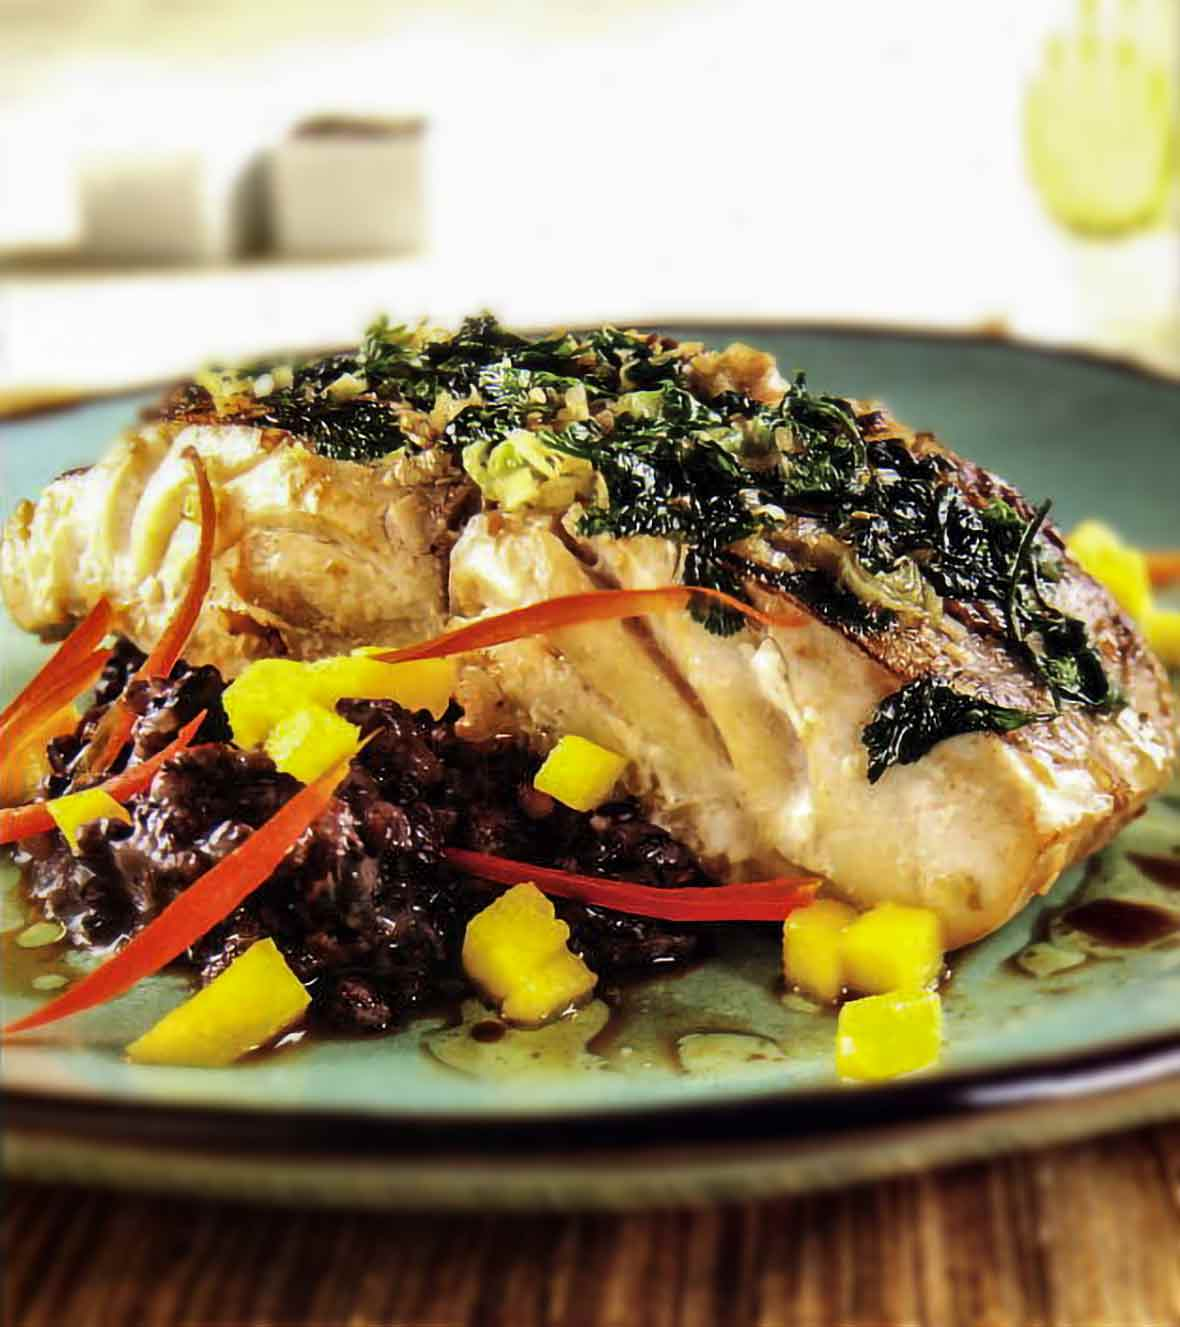 Ehu with a lemongrass-cilantro crust on a ned of black rice and diced mango